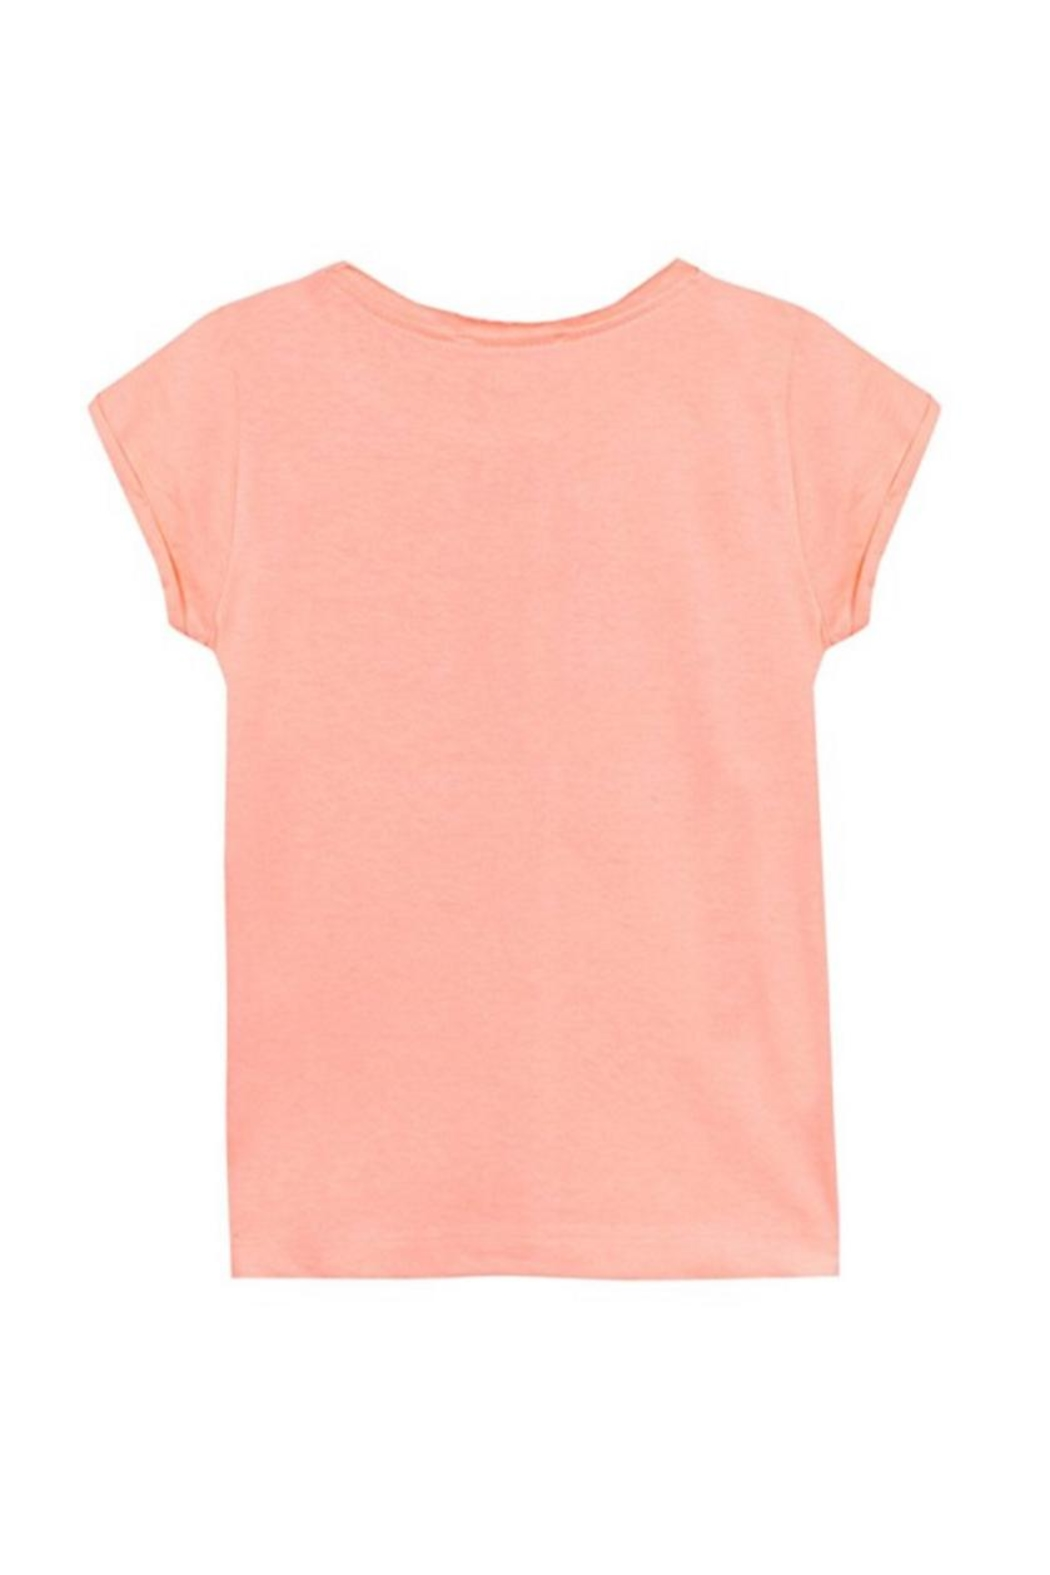 3 Pommes Neon Beach Tee - Front Full Image